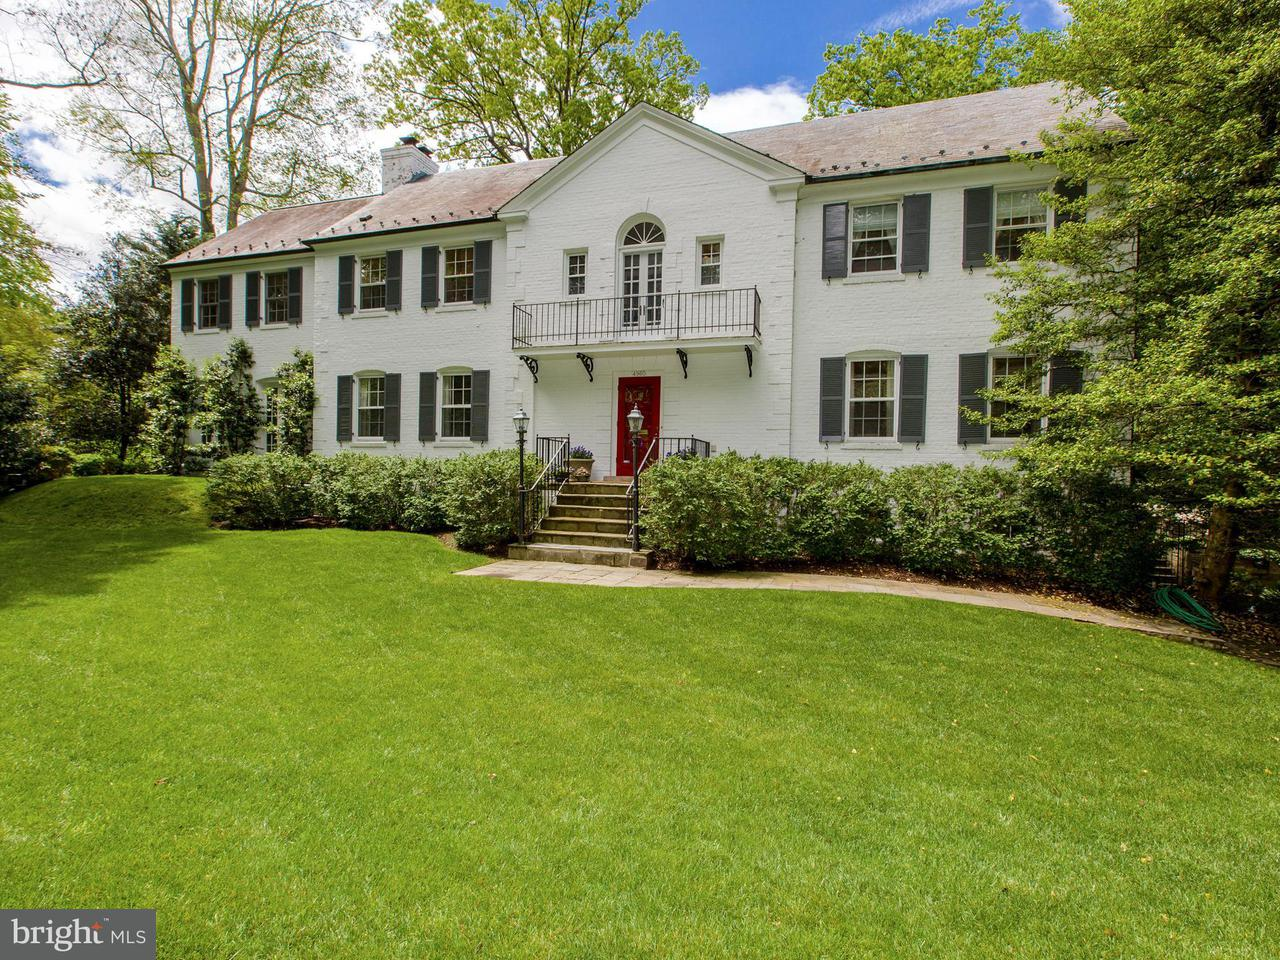 Single Family Home for Sale at 4960 ROCKWOOD PKWY NW 4960 ROCKWOOD PKWY NW Washington, District Of Columbia 20016 United States